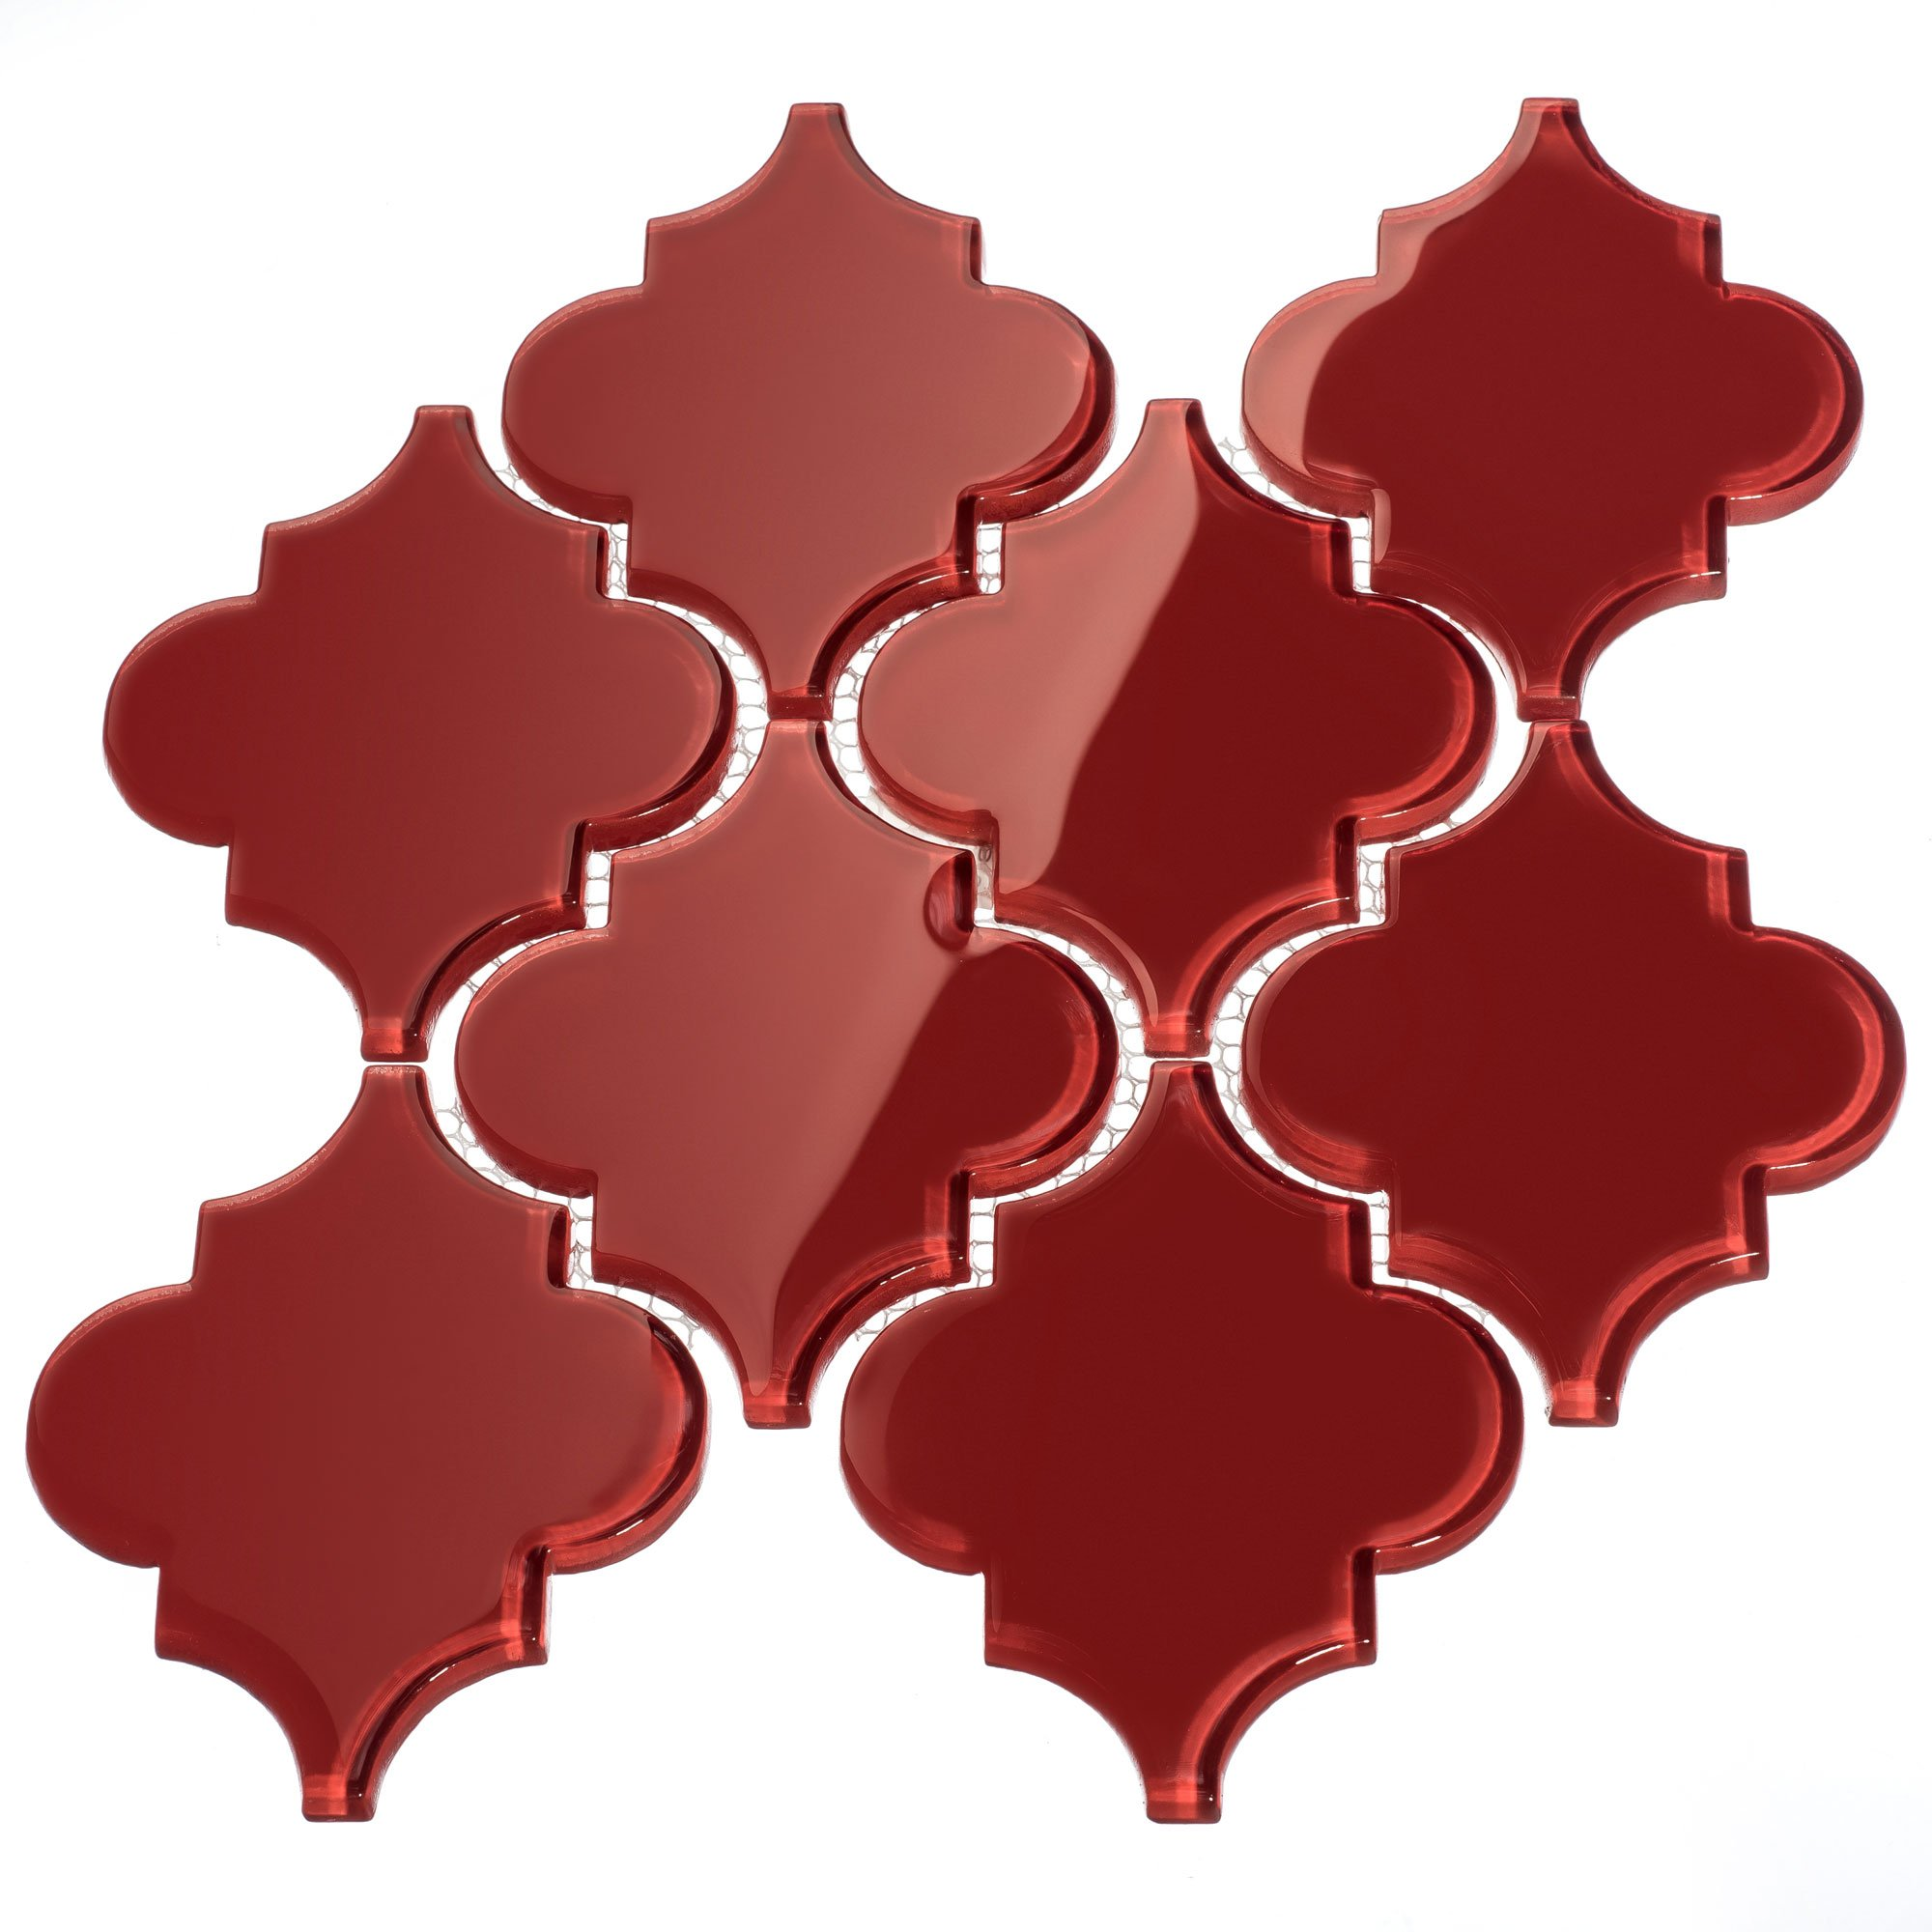 Giorbello G9130 Glass Arabesque Tile, Ruby Red